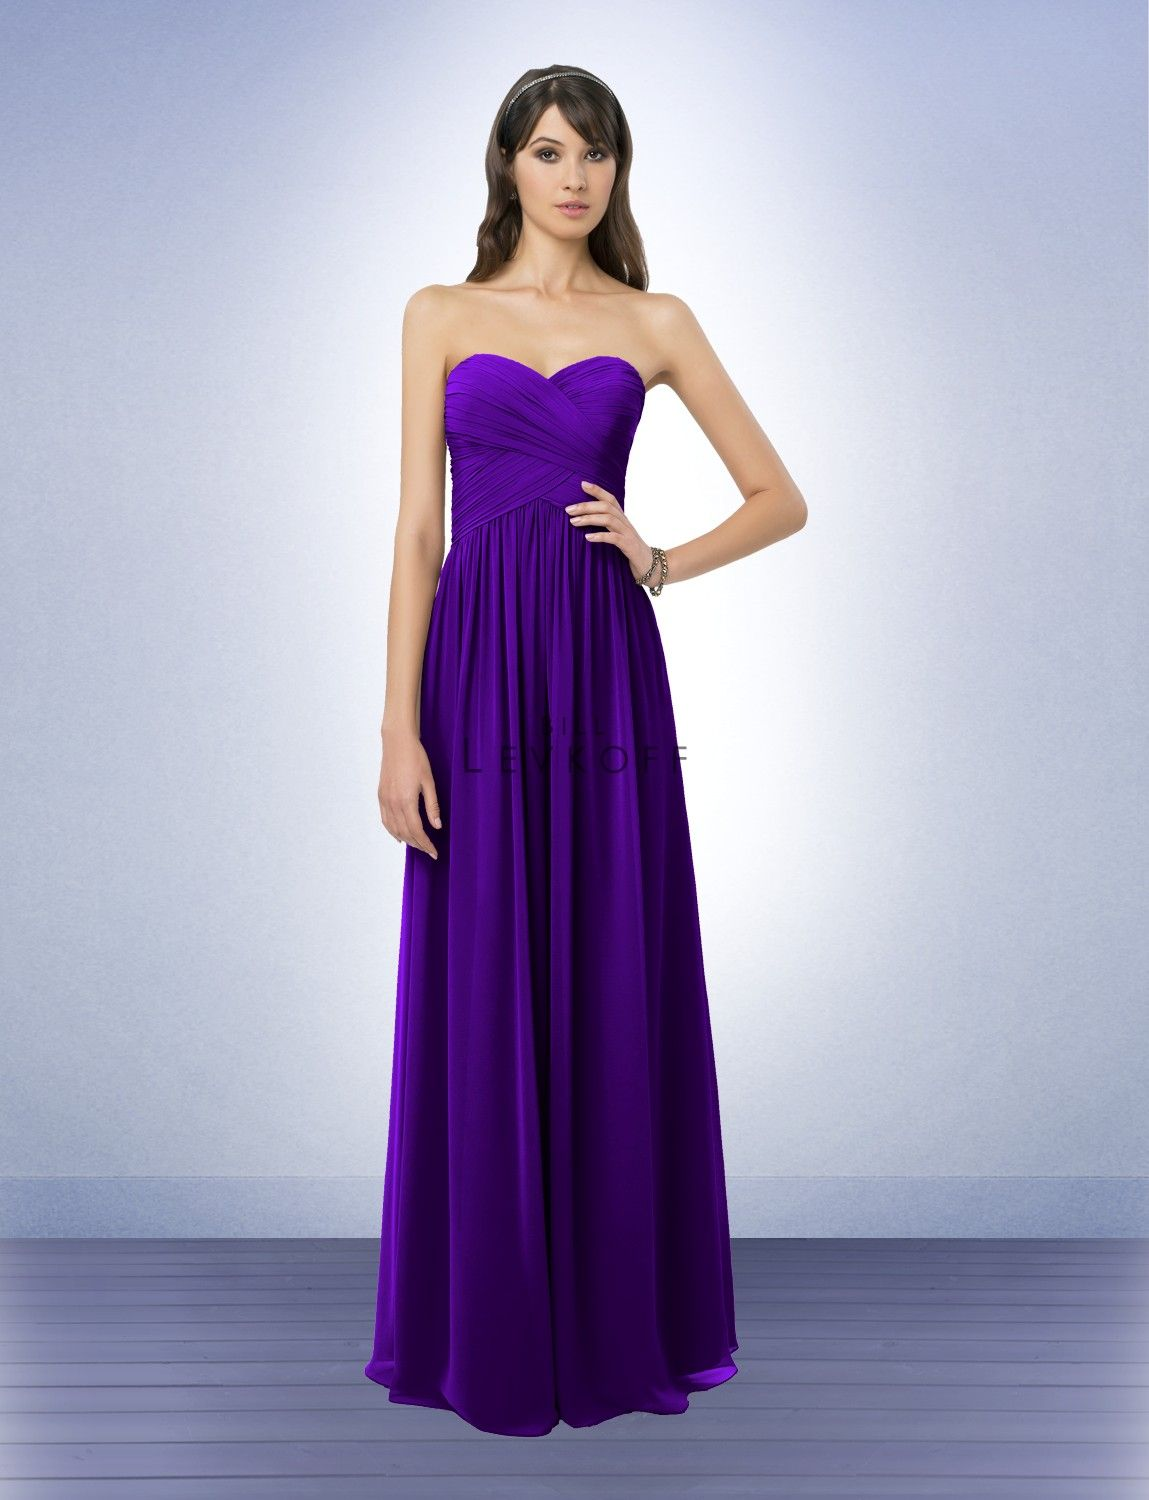 In Pink Royal Purple Bridesmaid Dress Bridesmaid Dresses